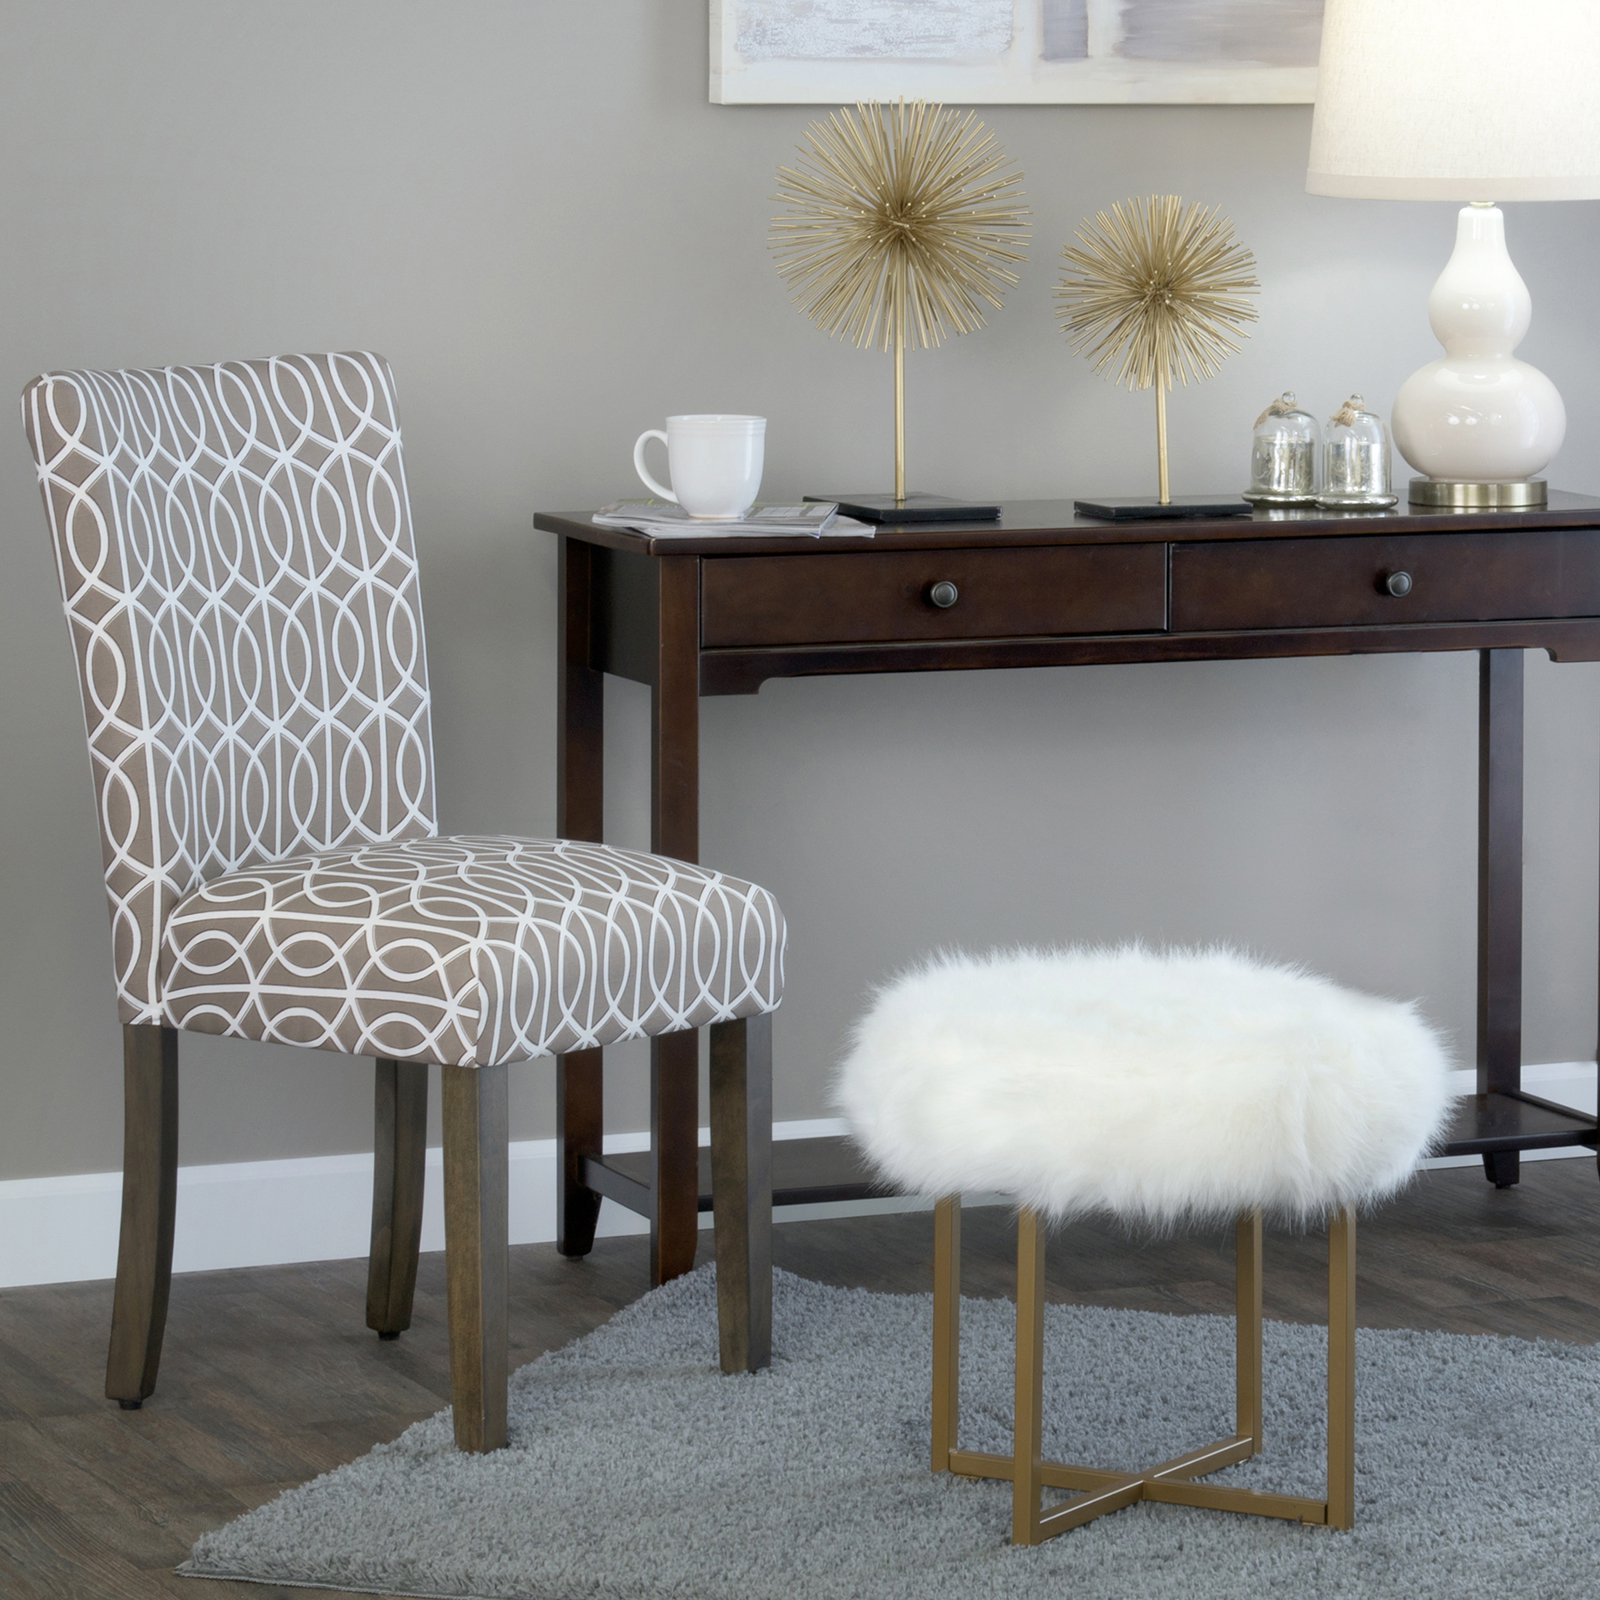 details about homepop faux fur round stool decorative living room accent  chair white